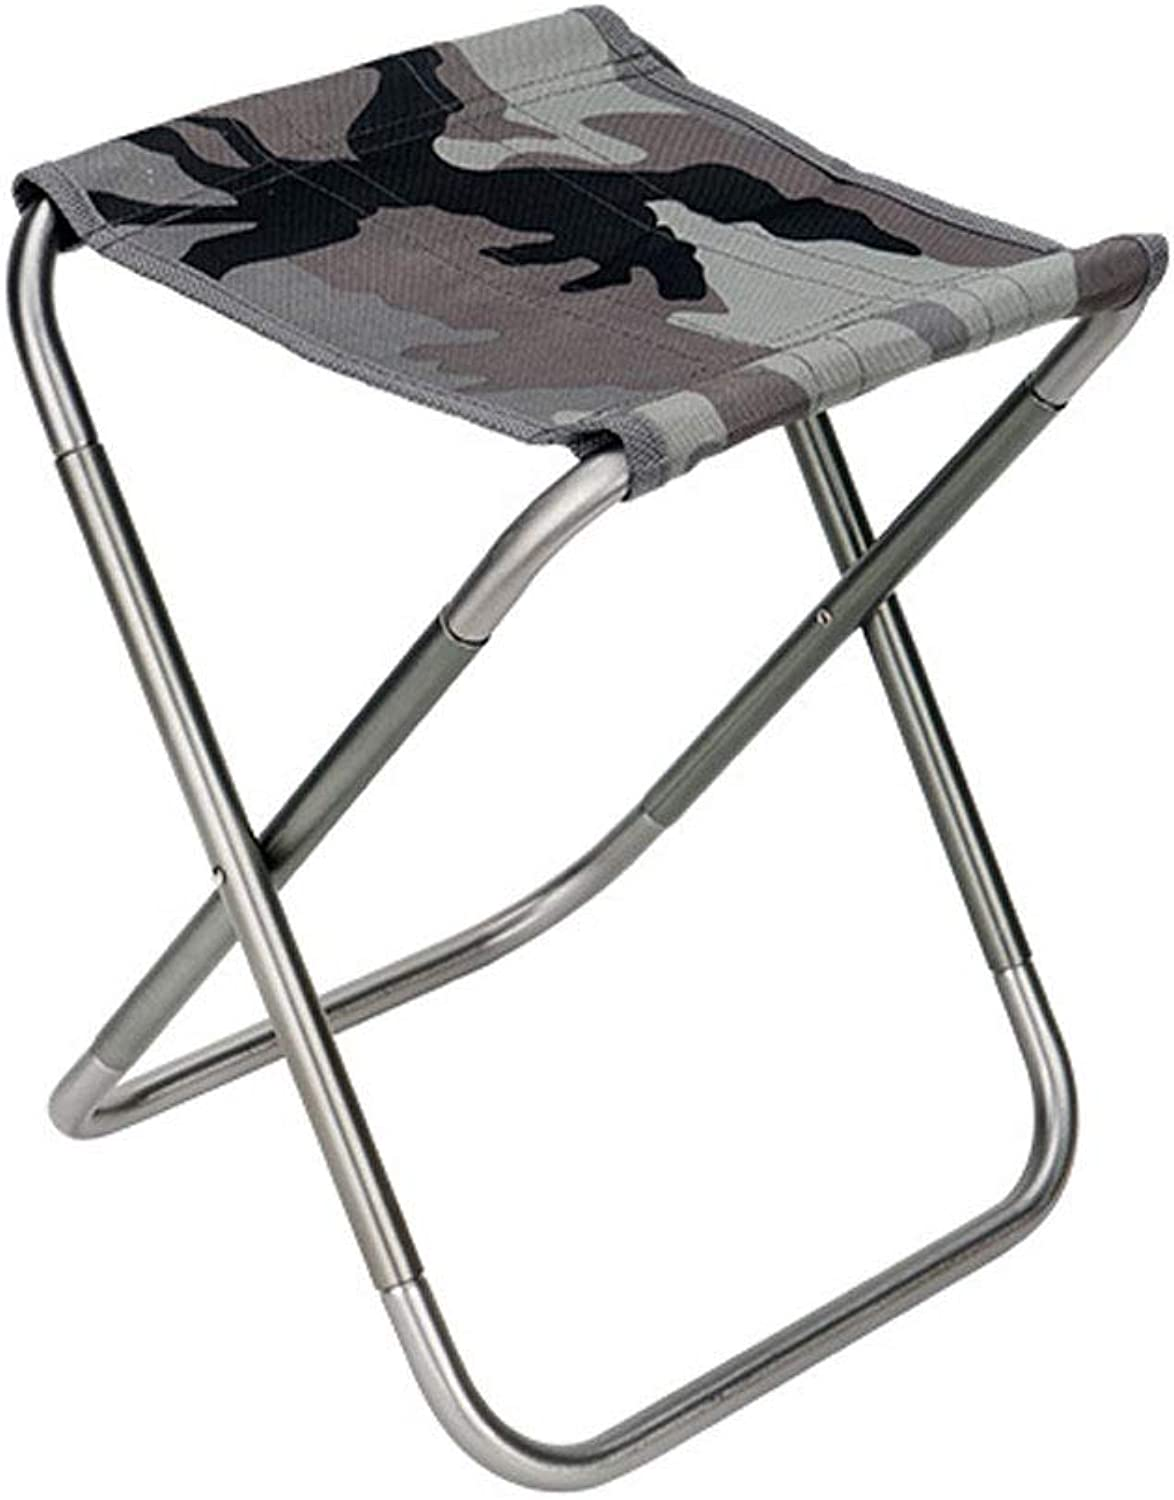 DEI QI Folding Chair Ultra Light Portable Outdoor Fishing Camping Mountaineering Sketch Folding Stool for shoes Low Stool